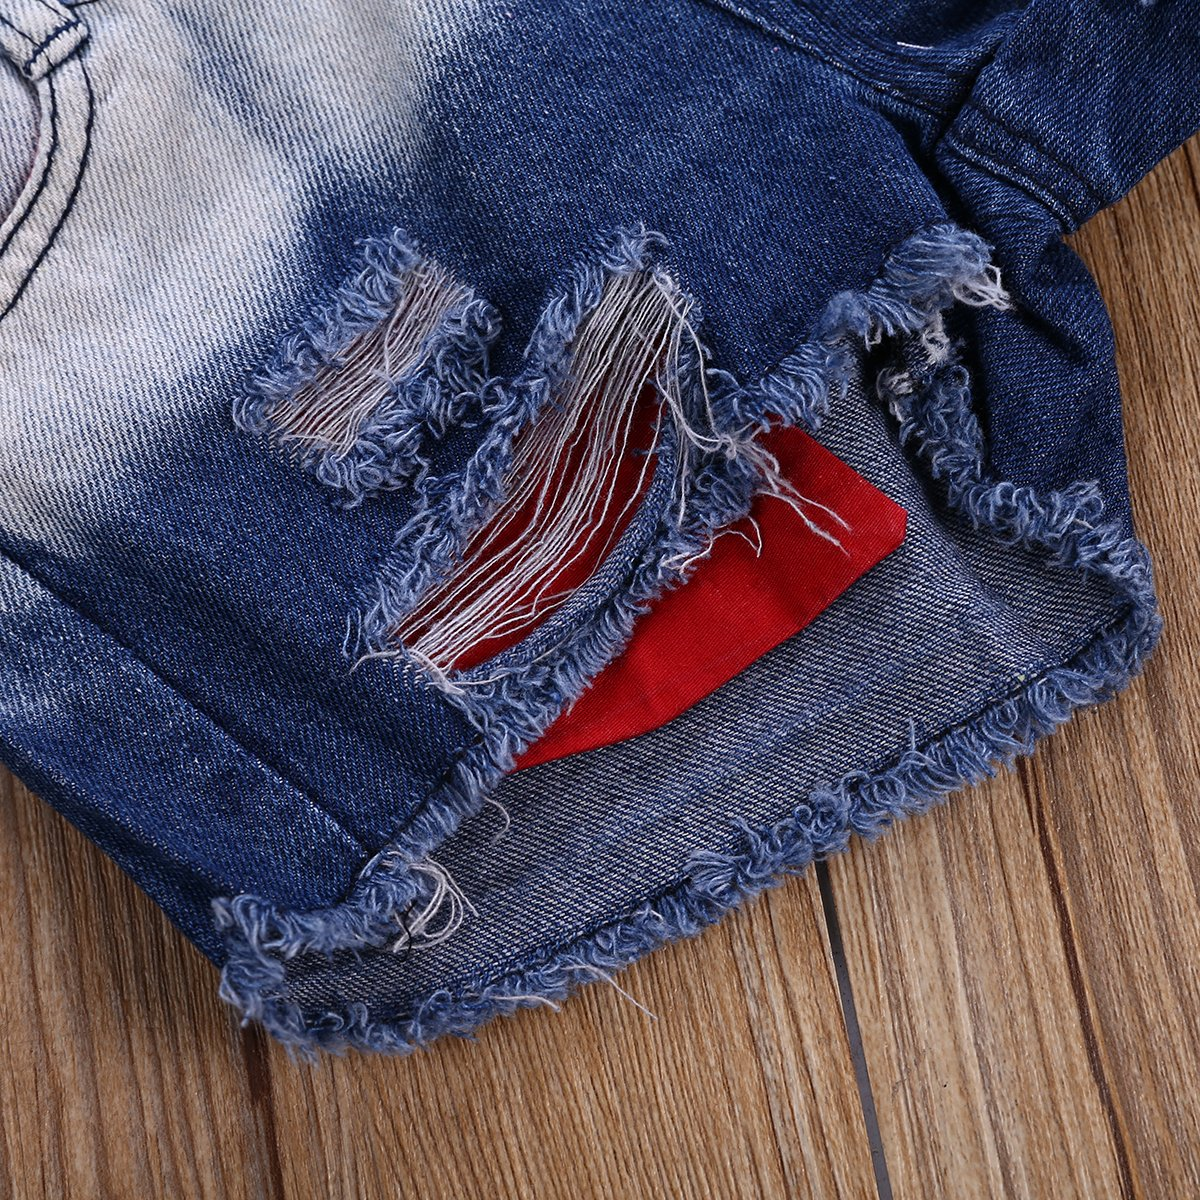 Girls' Clothing Flight Tracker 2pcs Toddler Kids Baby Girls Vest Tops+denim Ripped Pants Jeans Clothes Outfits T Shirt Pants Jeans Summer